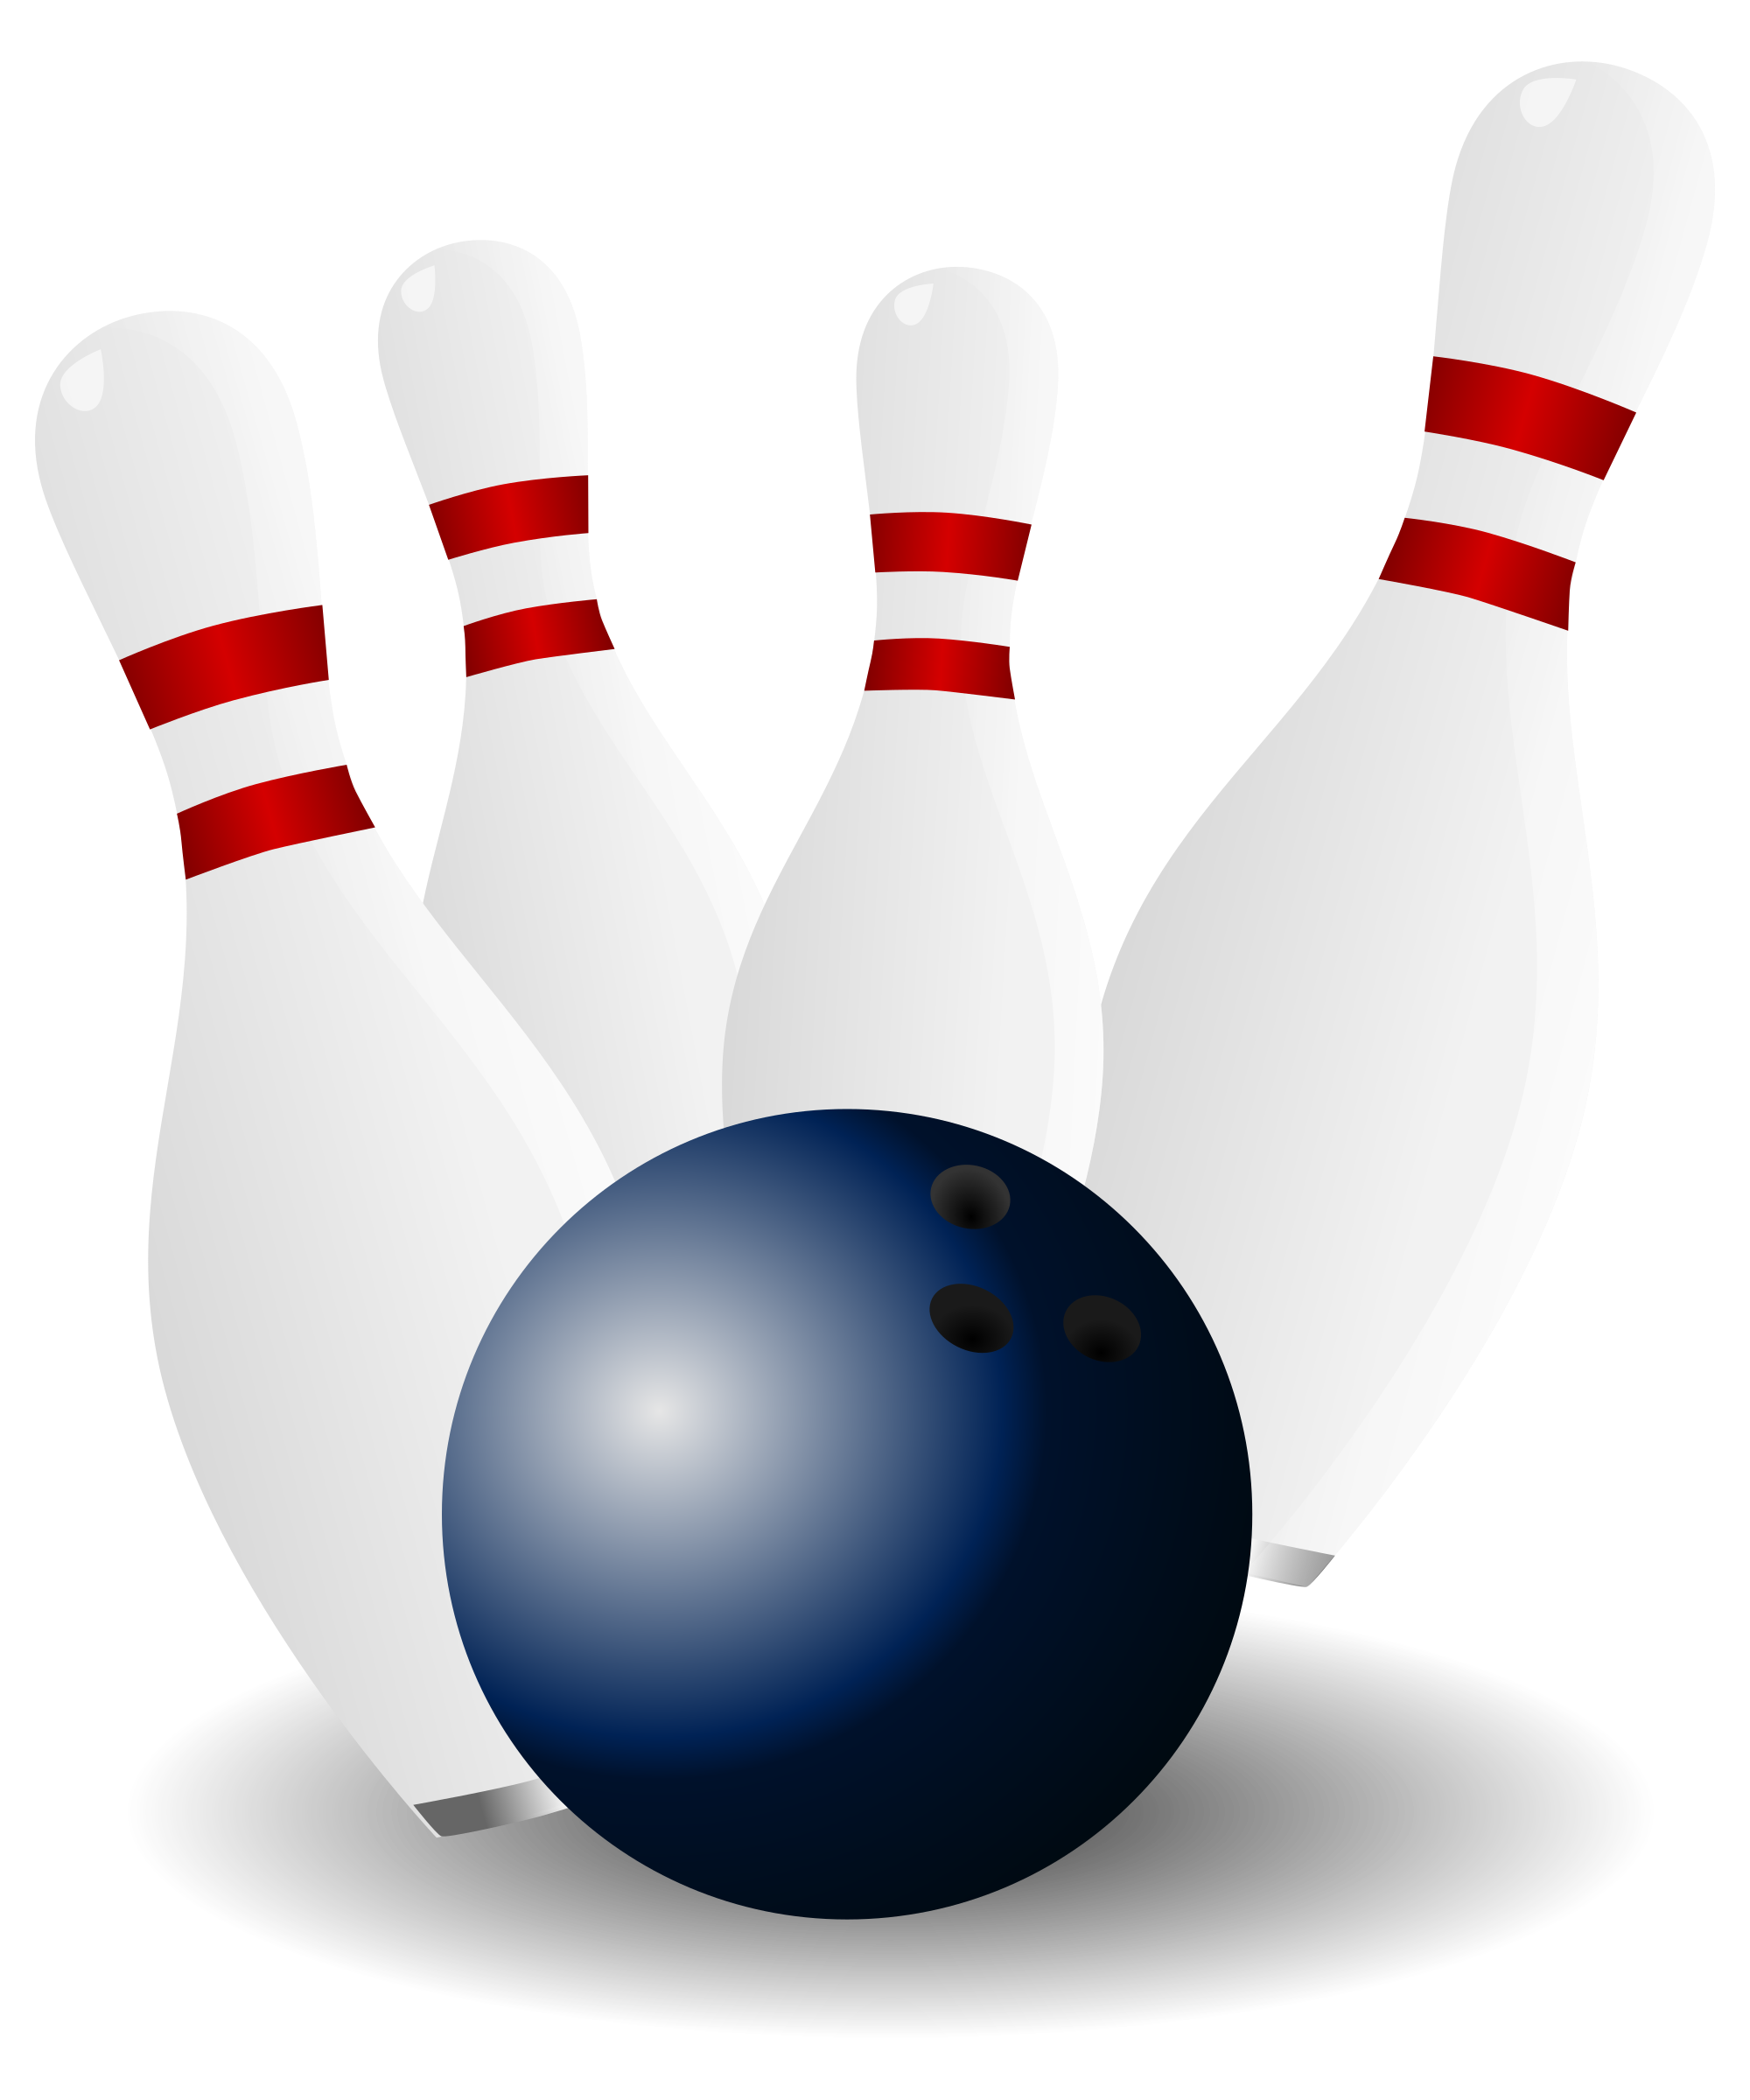 Png image arts. Bowling clipart transparent background